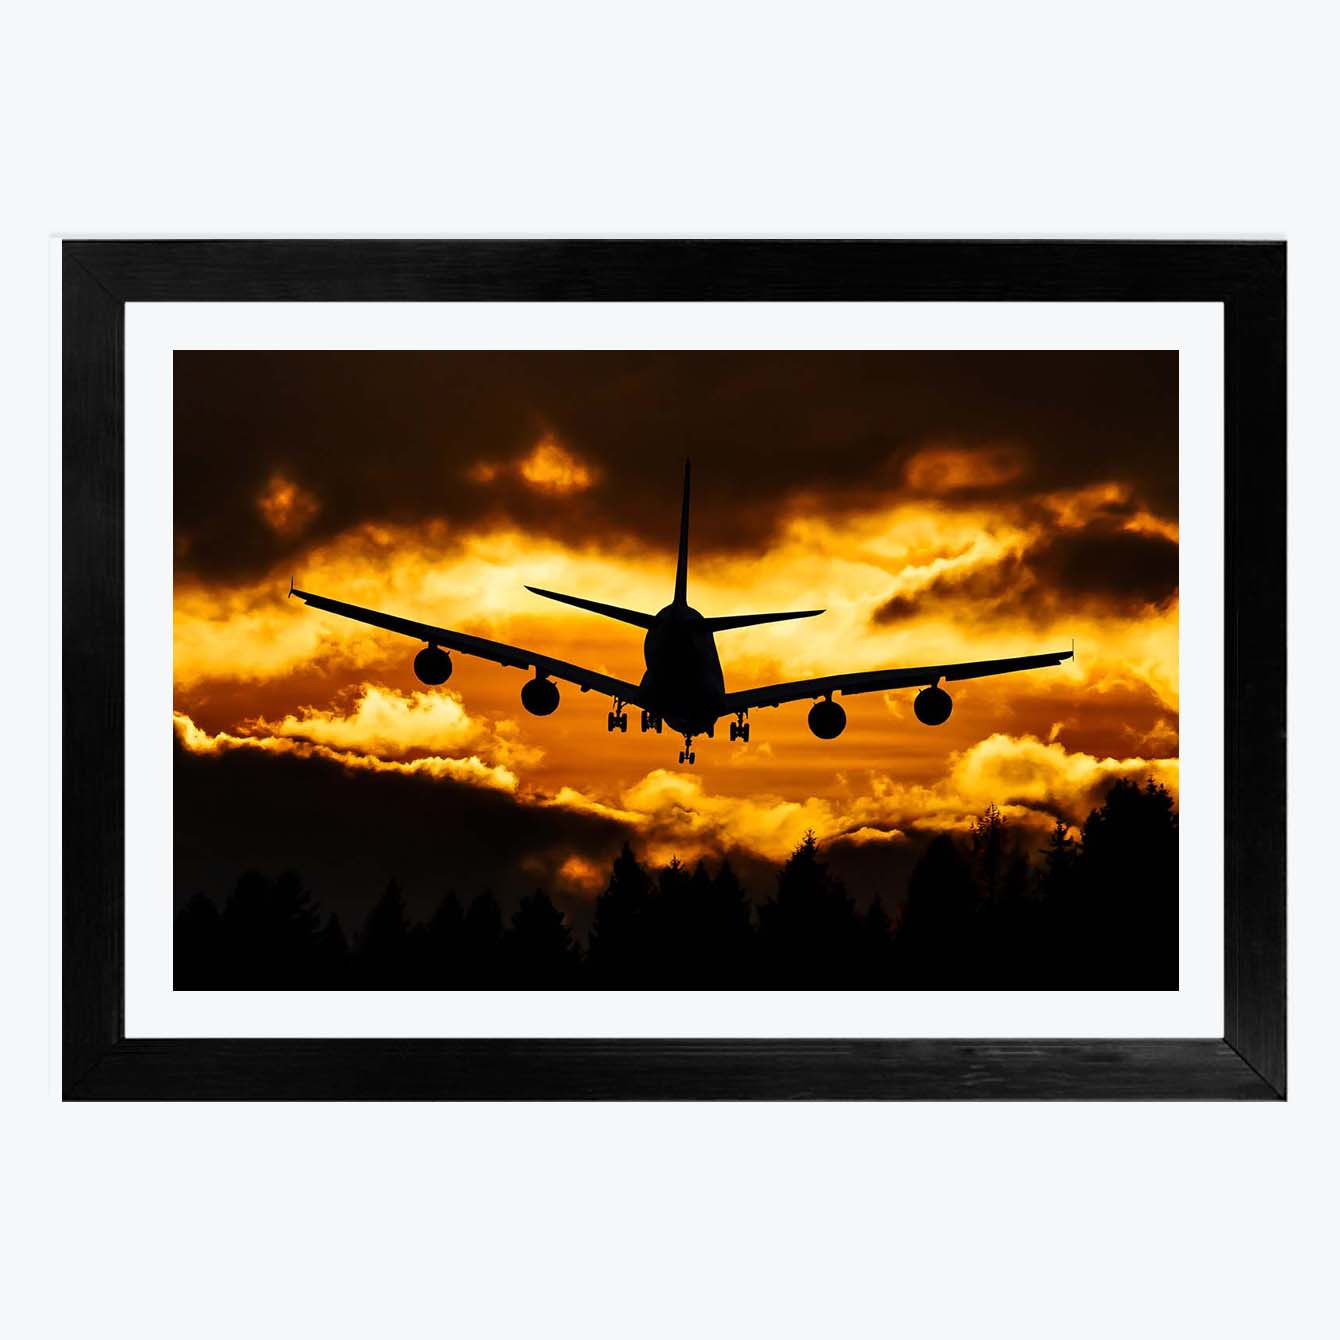 Aeroplan Framed Photography